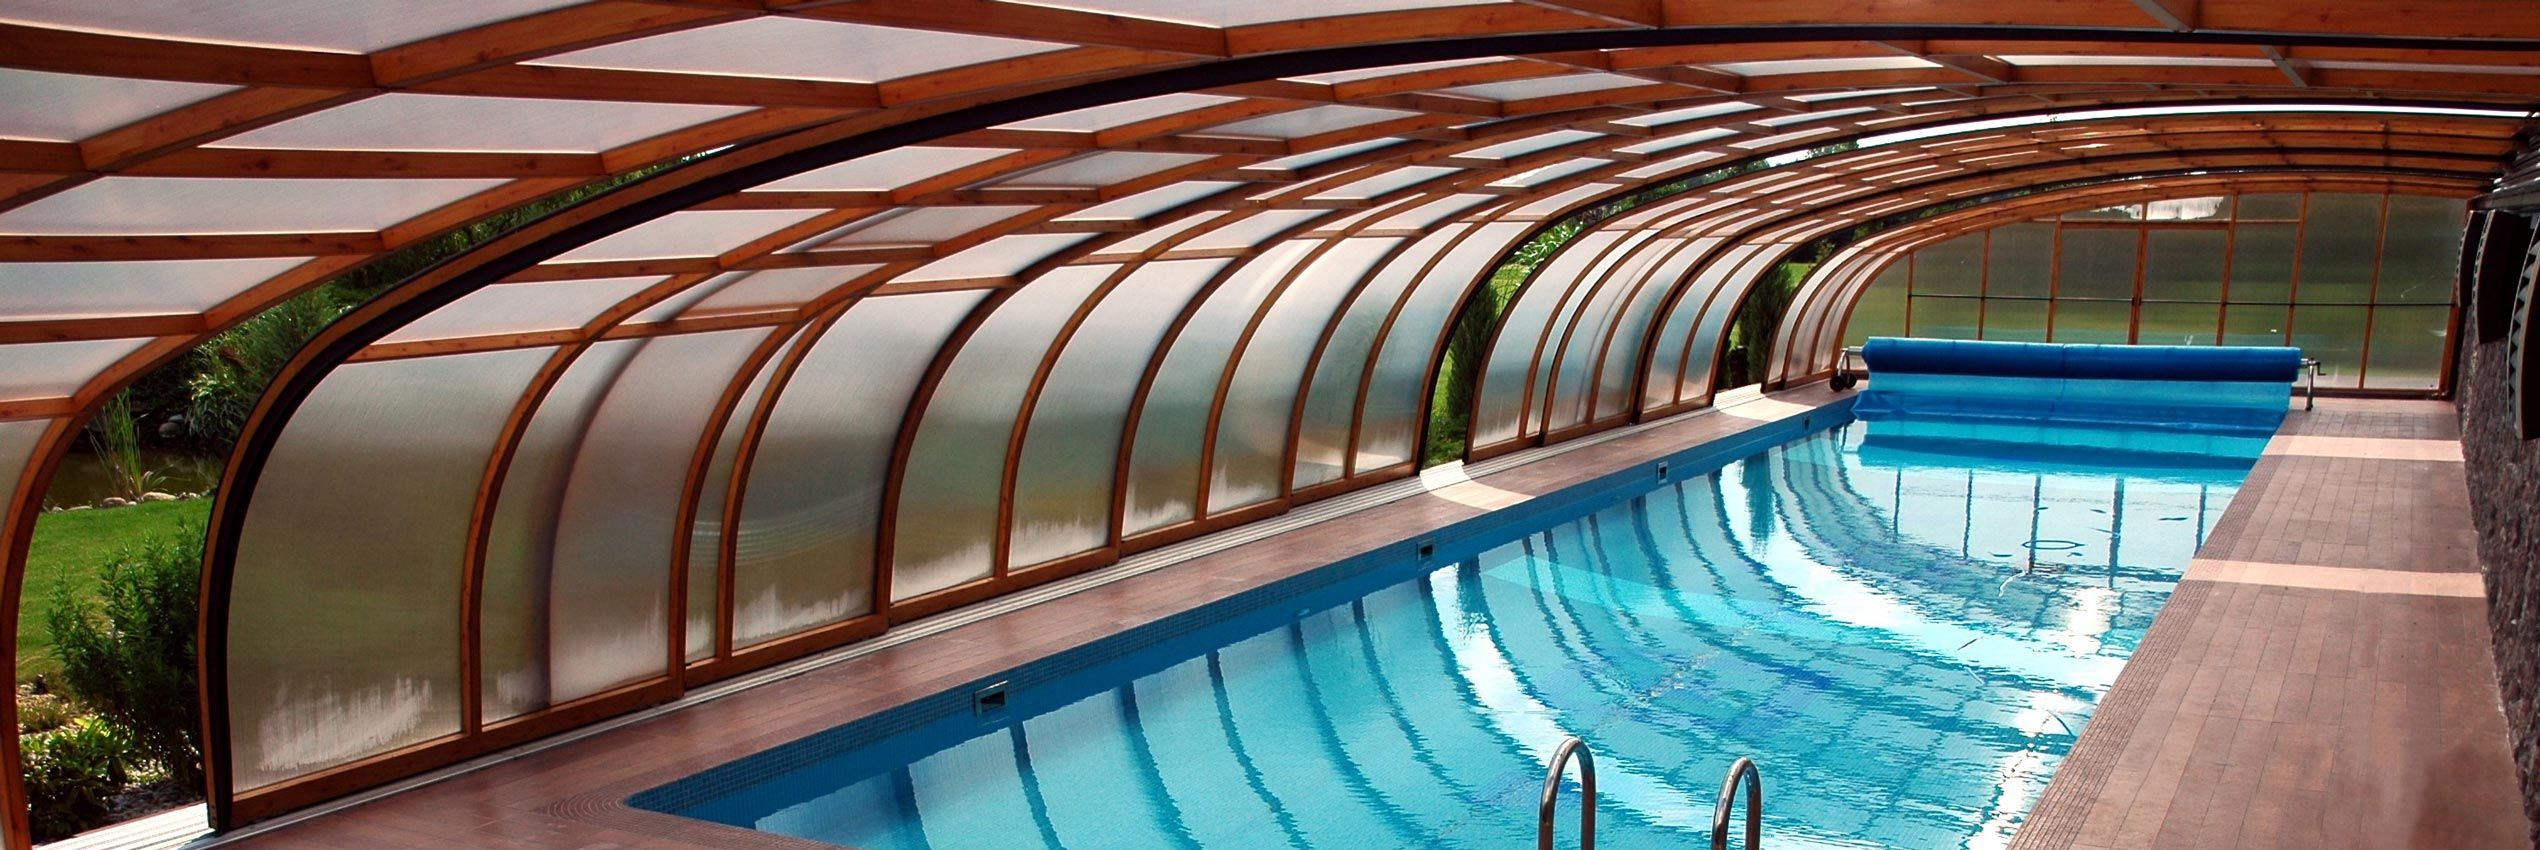 High Line Retractable Pool Enclosures And Pool Covers Sunrooms Enclosures Com